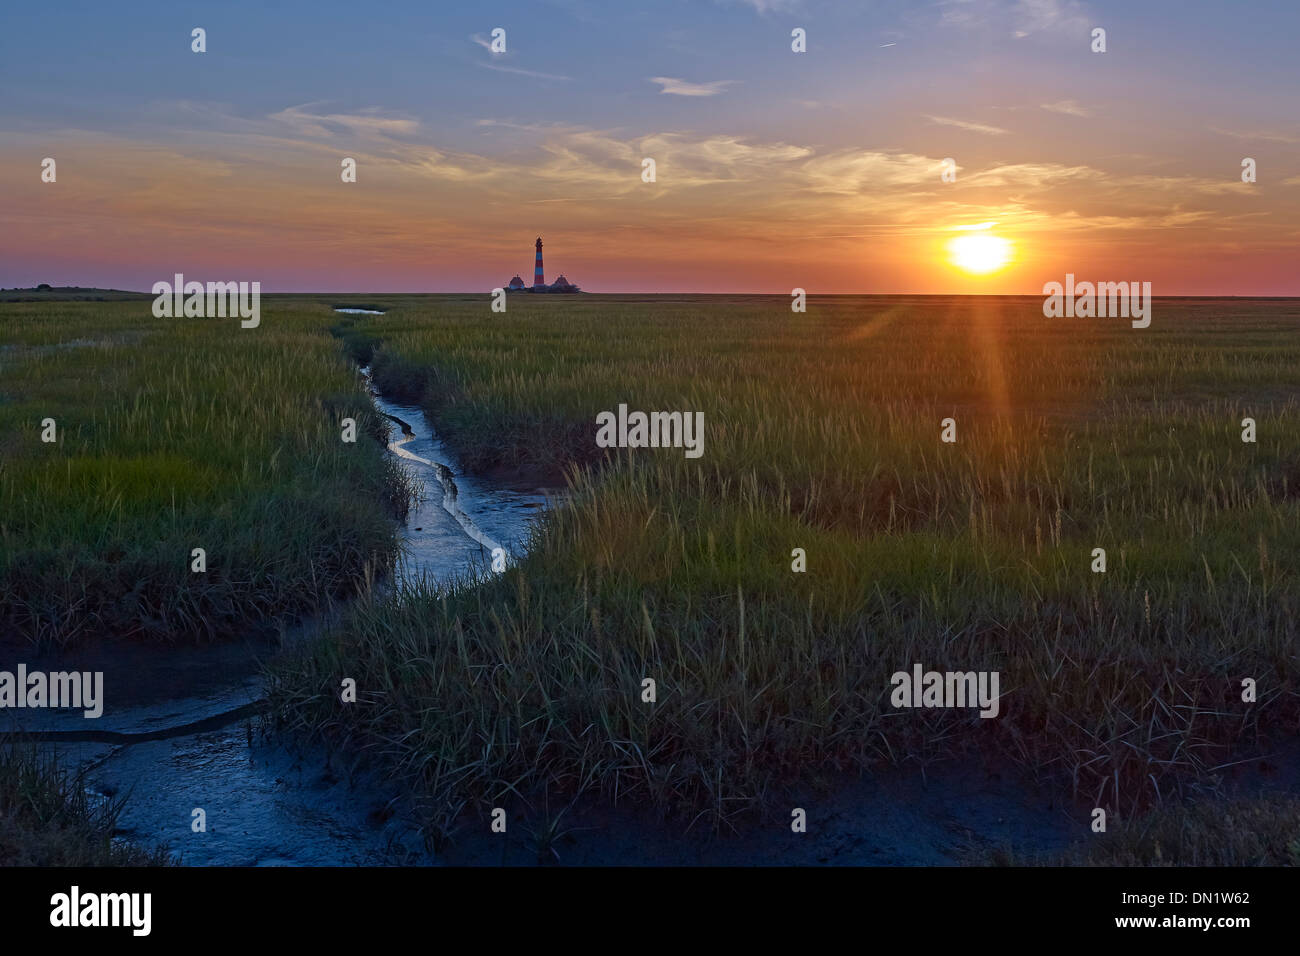 Sunset at the lighthouse Westerheversand, Eiderstedt peninsula, North Frisia, Schleswig-Holstein, Germany Stock Photo